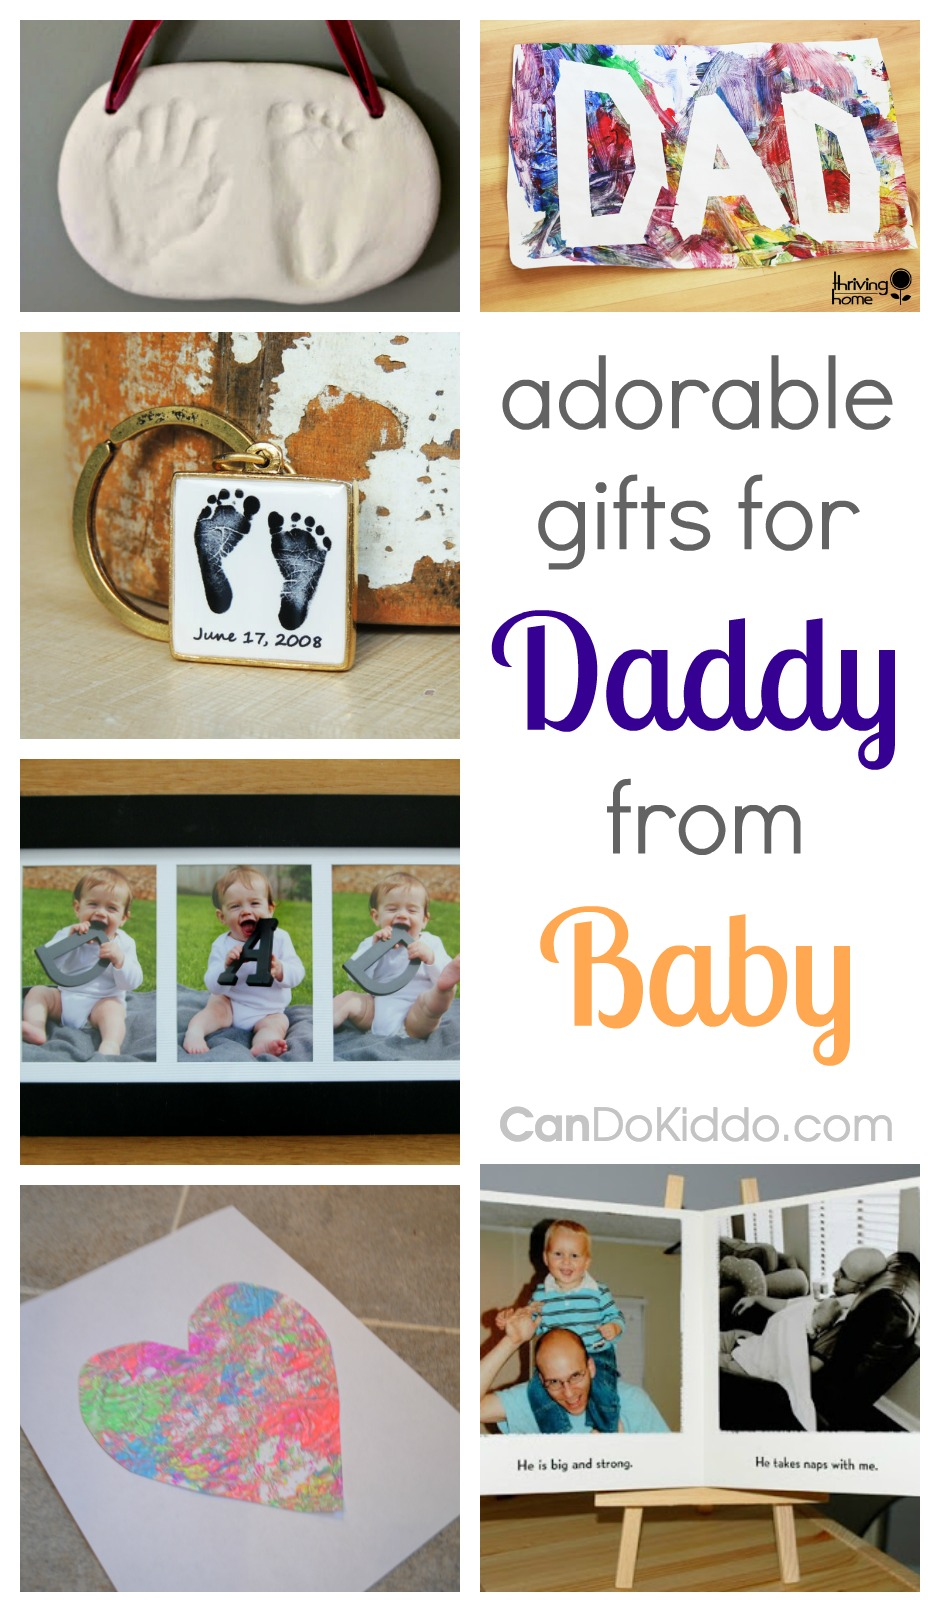 adorable fathers day gifts for dad diy and personal gifts for daddy from baby - Diy Christmas Gifts For Dad